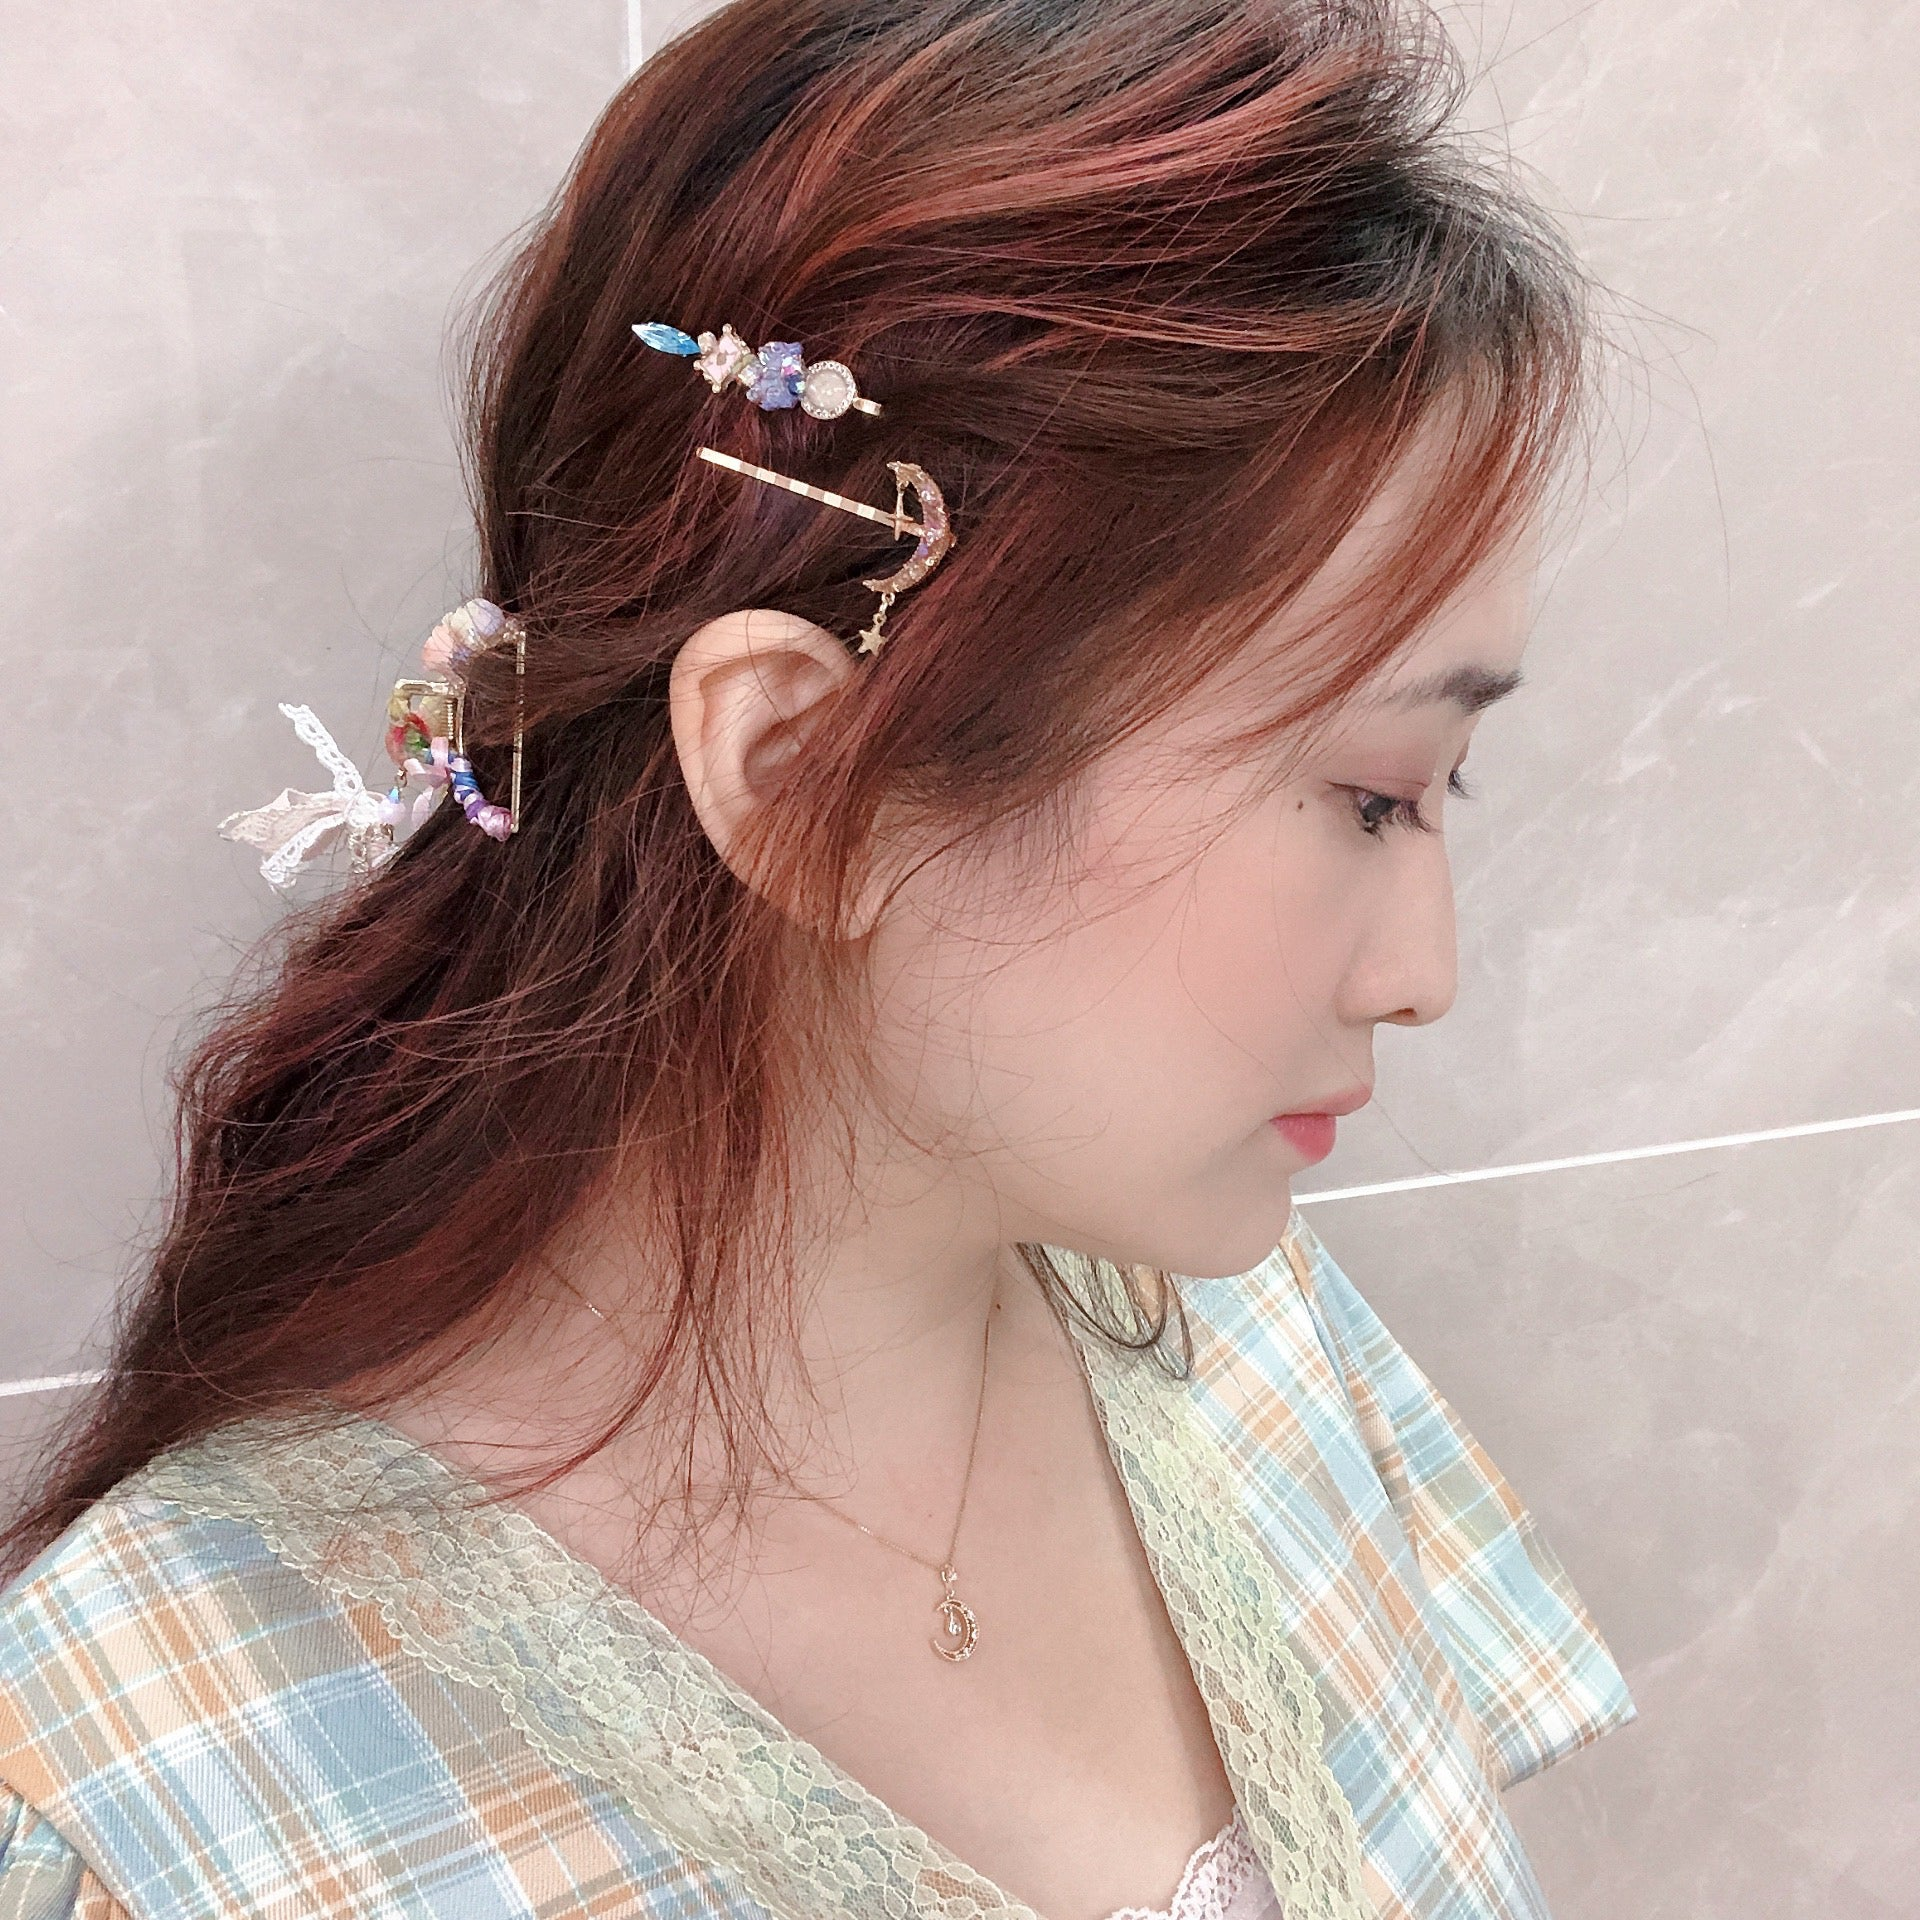 ⑧ Treasure Island Hair Clip Set (10 Designs)